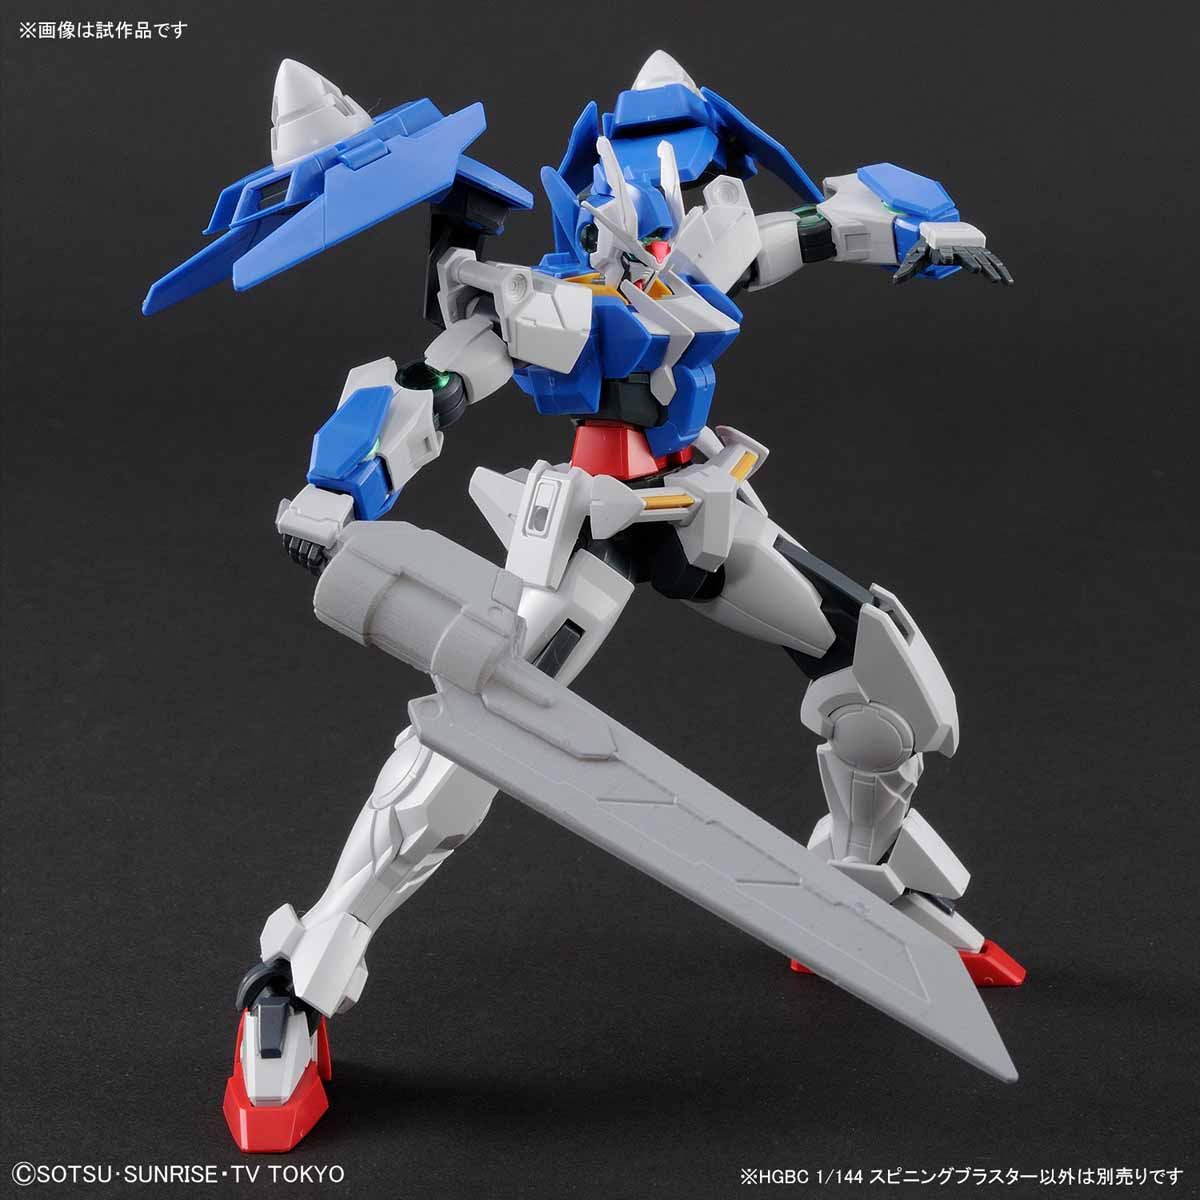 HGBC 1/144 Spinning Blaster - Release Info - Gundam Kits Collection News and Reviews